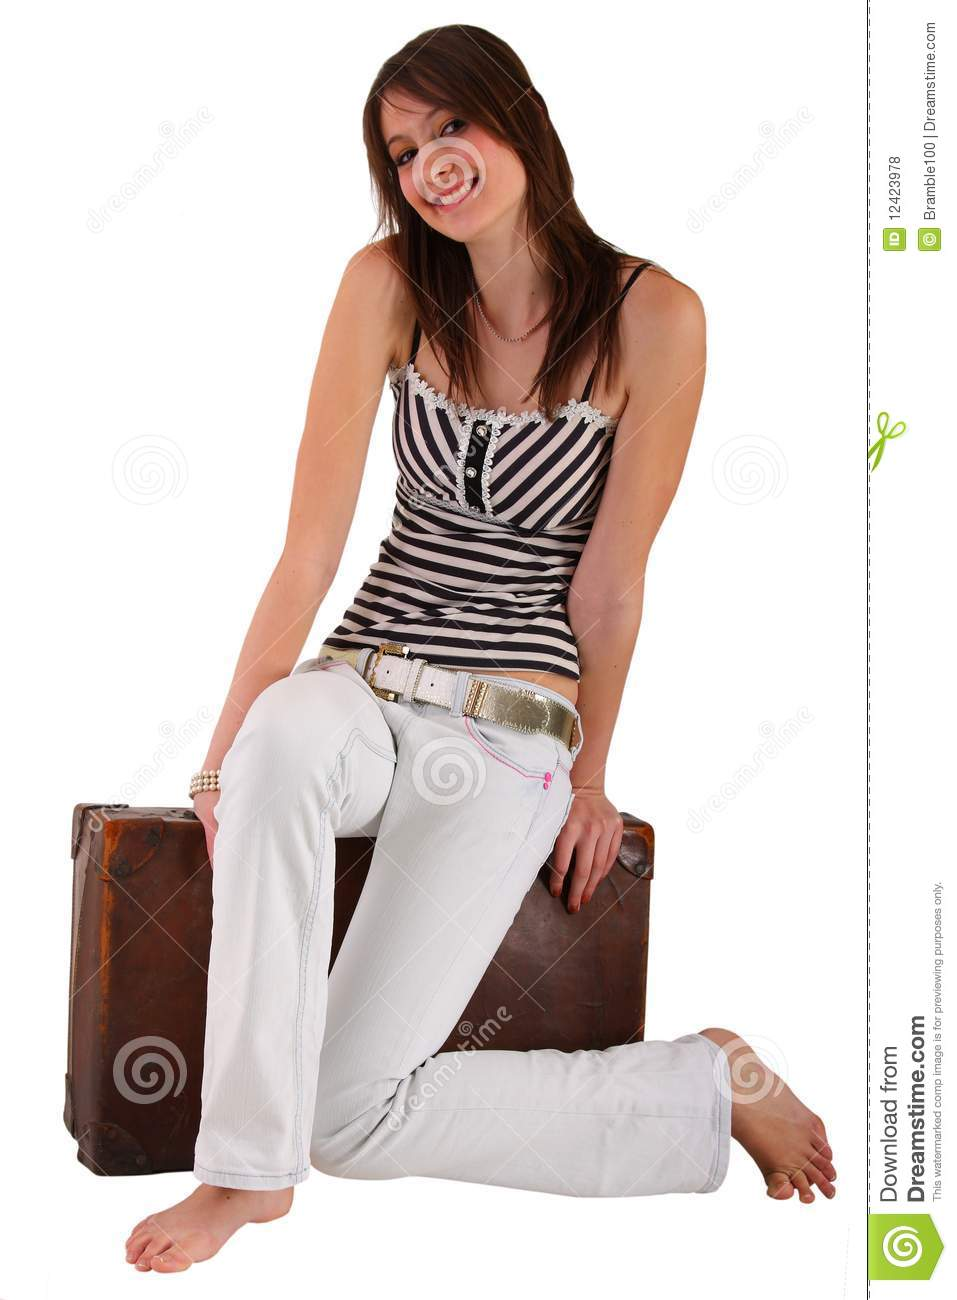 smiling teenage girl with old beaten up luggage royalty free stock photos image 12423978. Black Bedroom Furniture Sets. Home Design Ideas